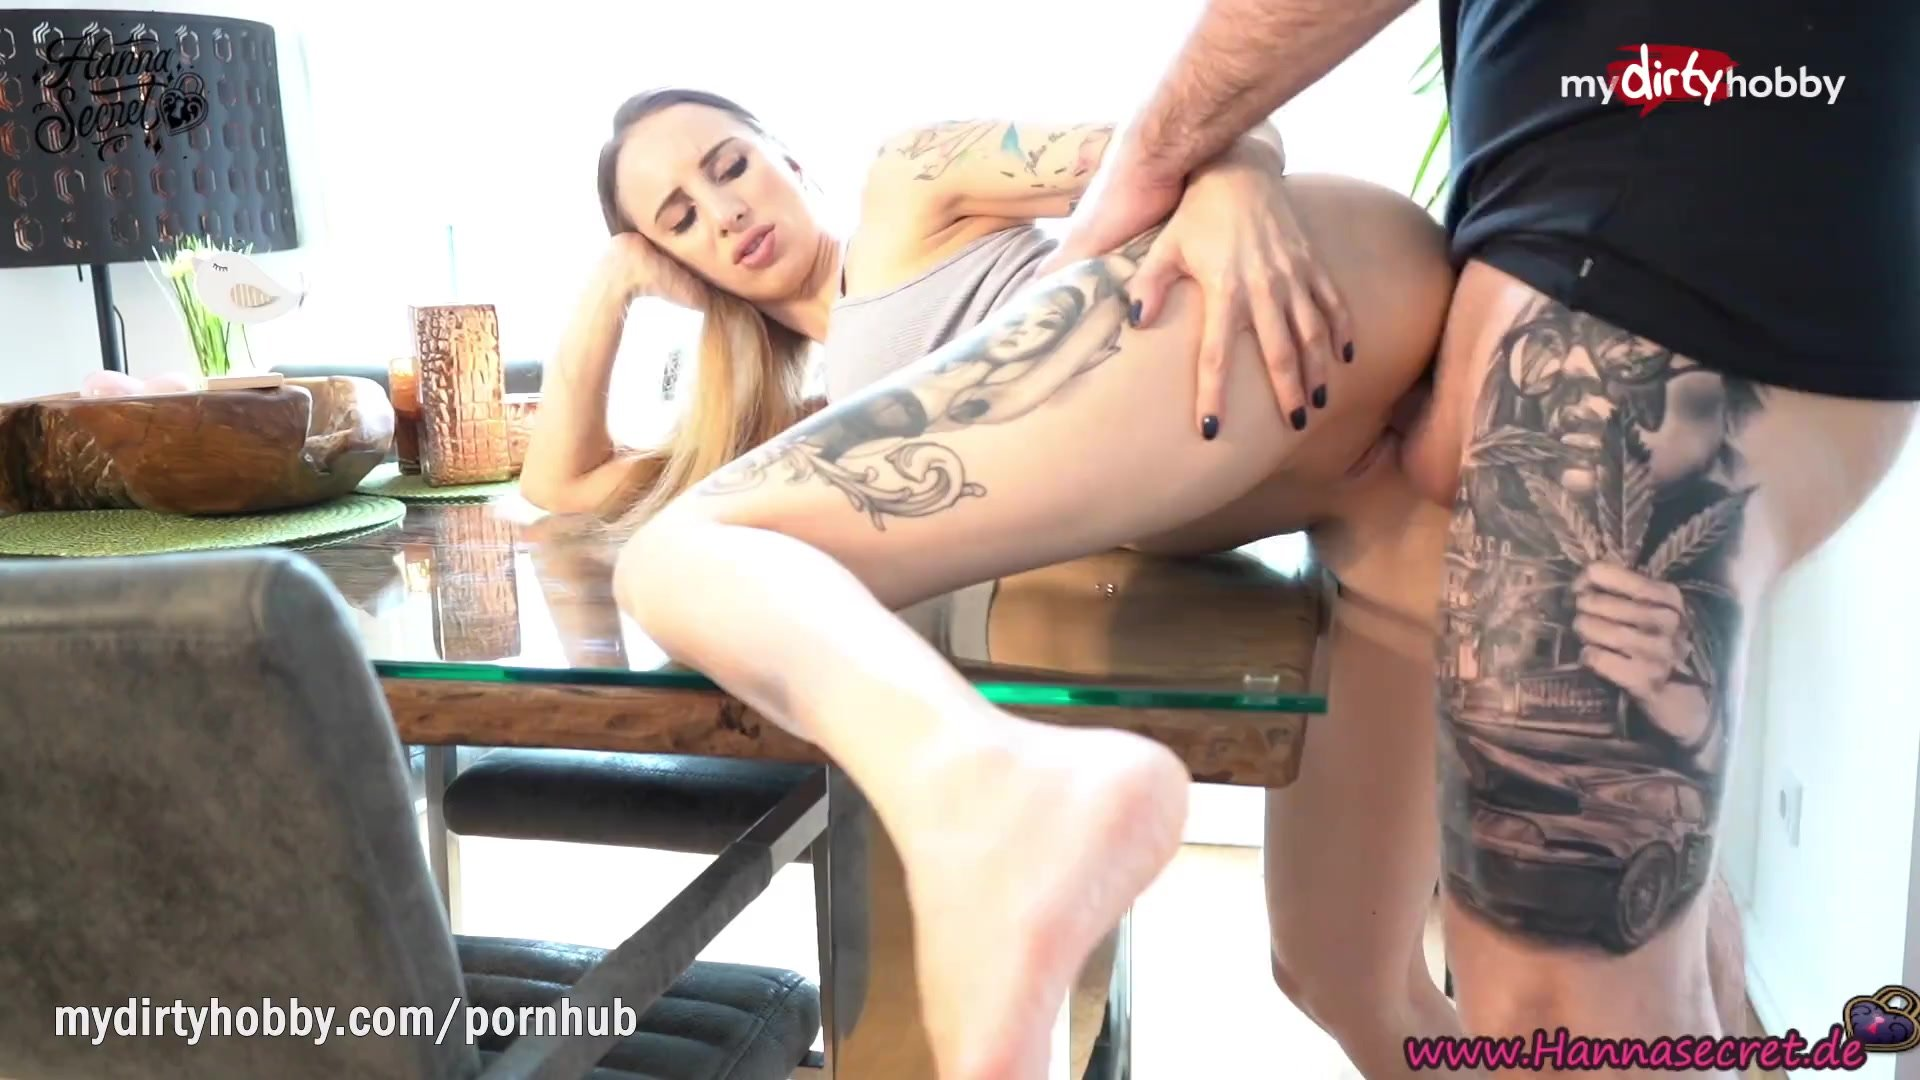 MyDirtyHobby - Fit babe Hanna Secret intense fuck on the kitchen table after the gym